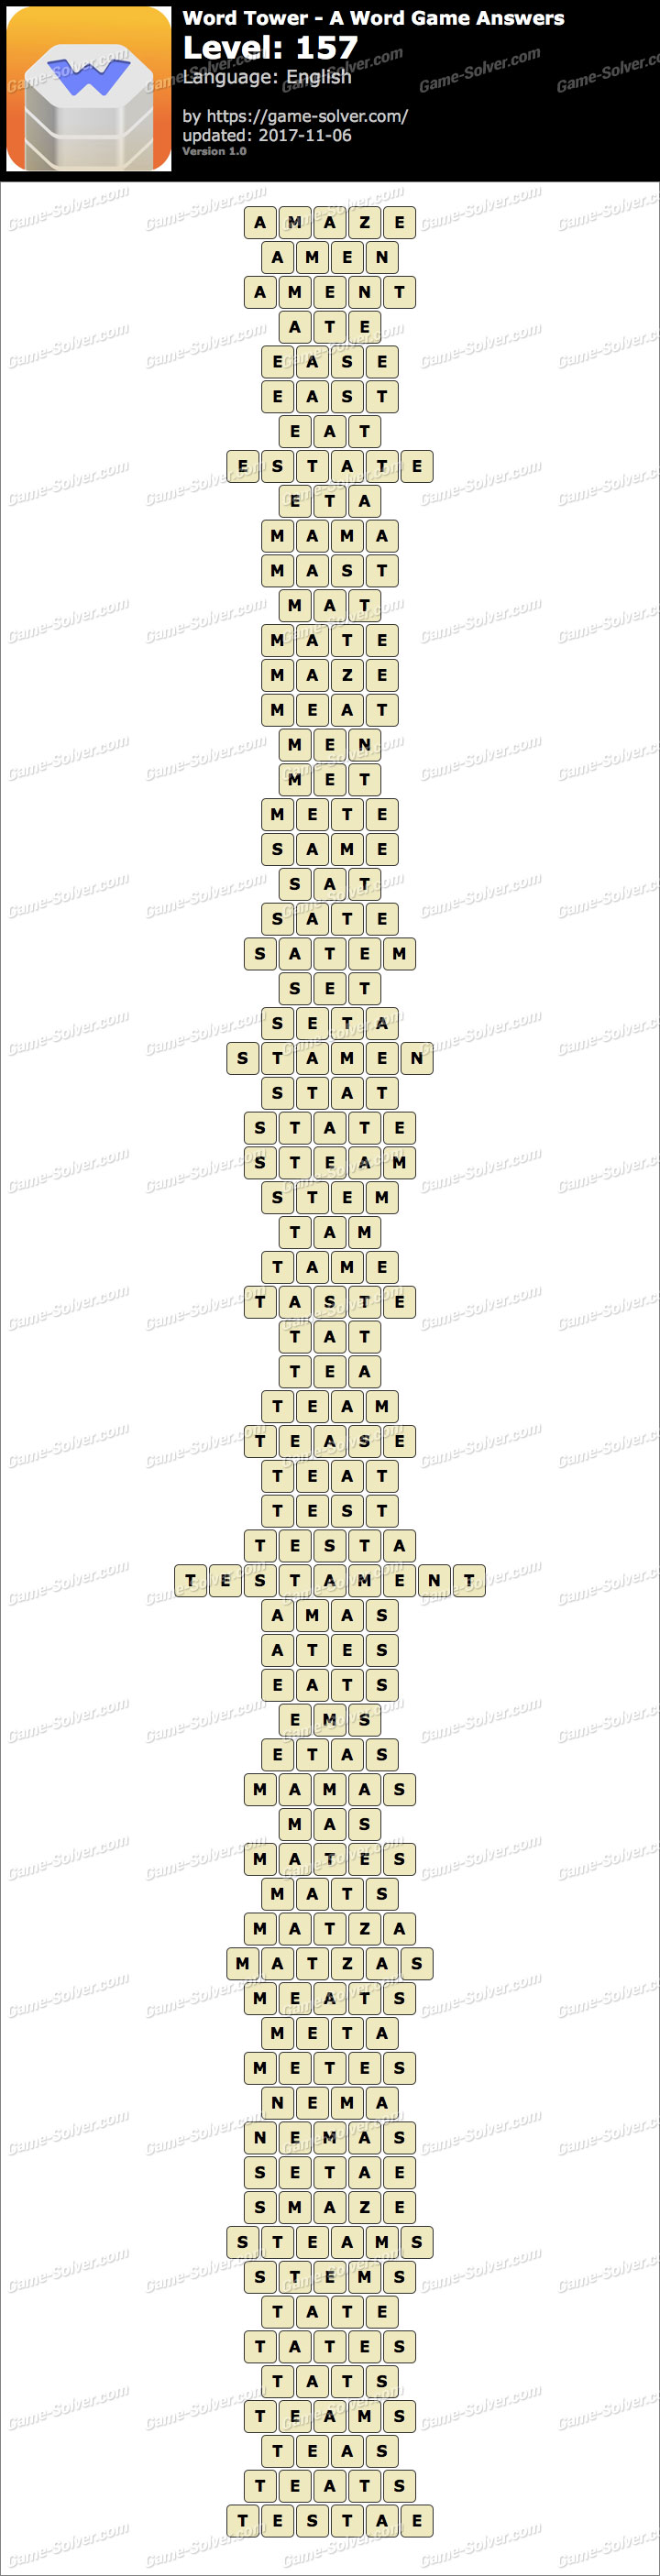 Word Tower Level 157 Answers